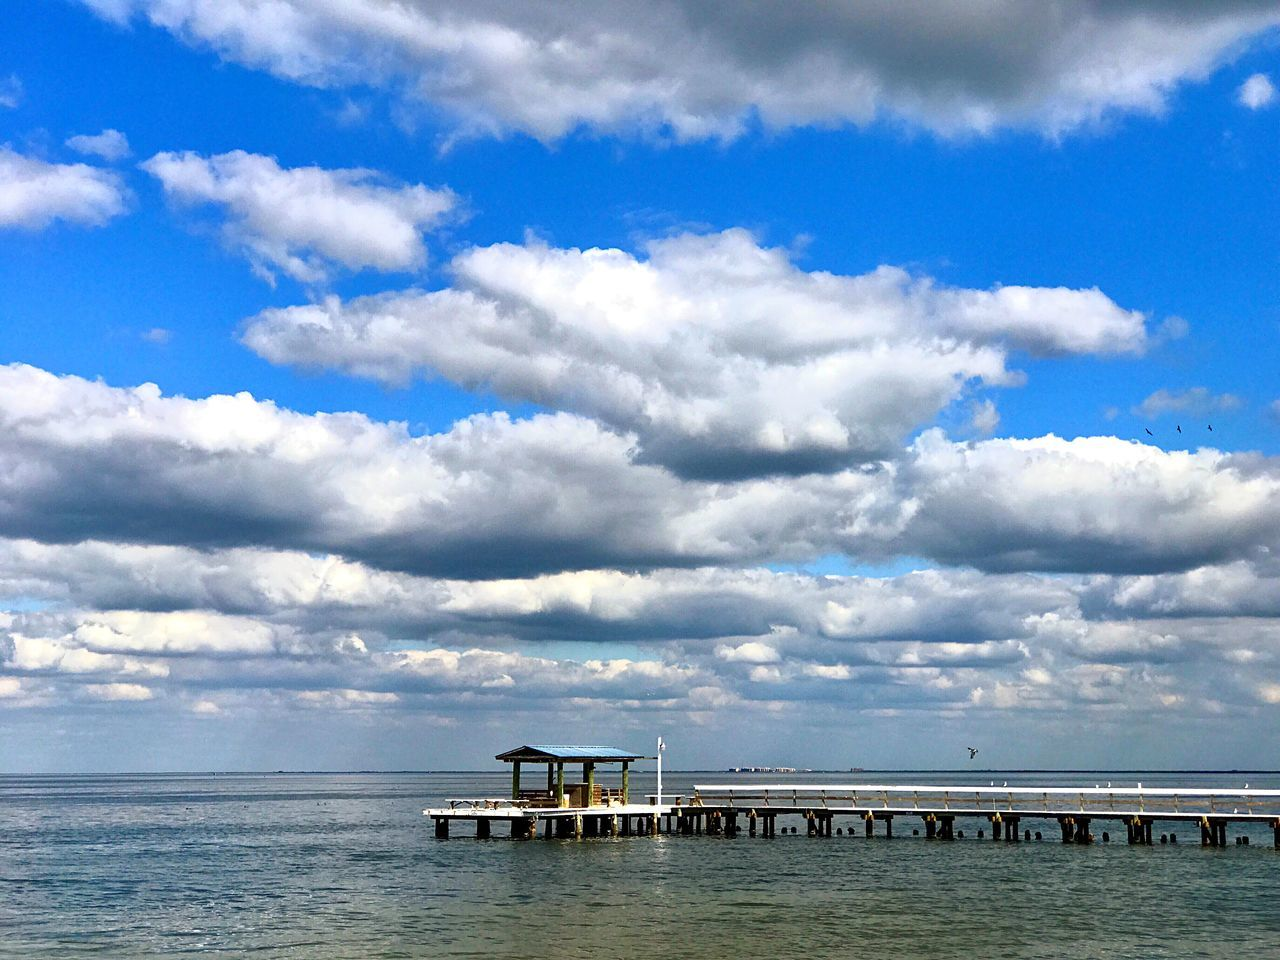 Sky Cloud - Sky Nature Beauty In Nature Water Blue Sea Ocean Pier Florida Cloud Clouds Day Outdoors Gulf Of Mexico Cumulus Cloud Holiday Vacations Vacation